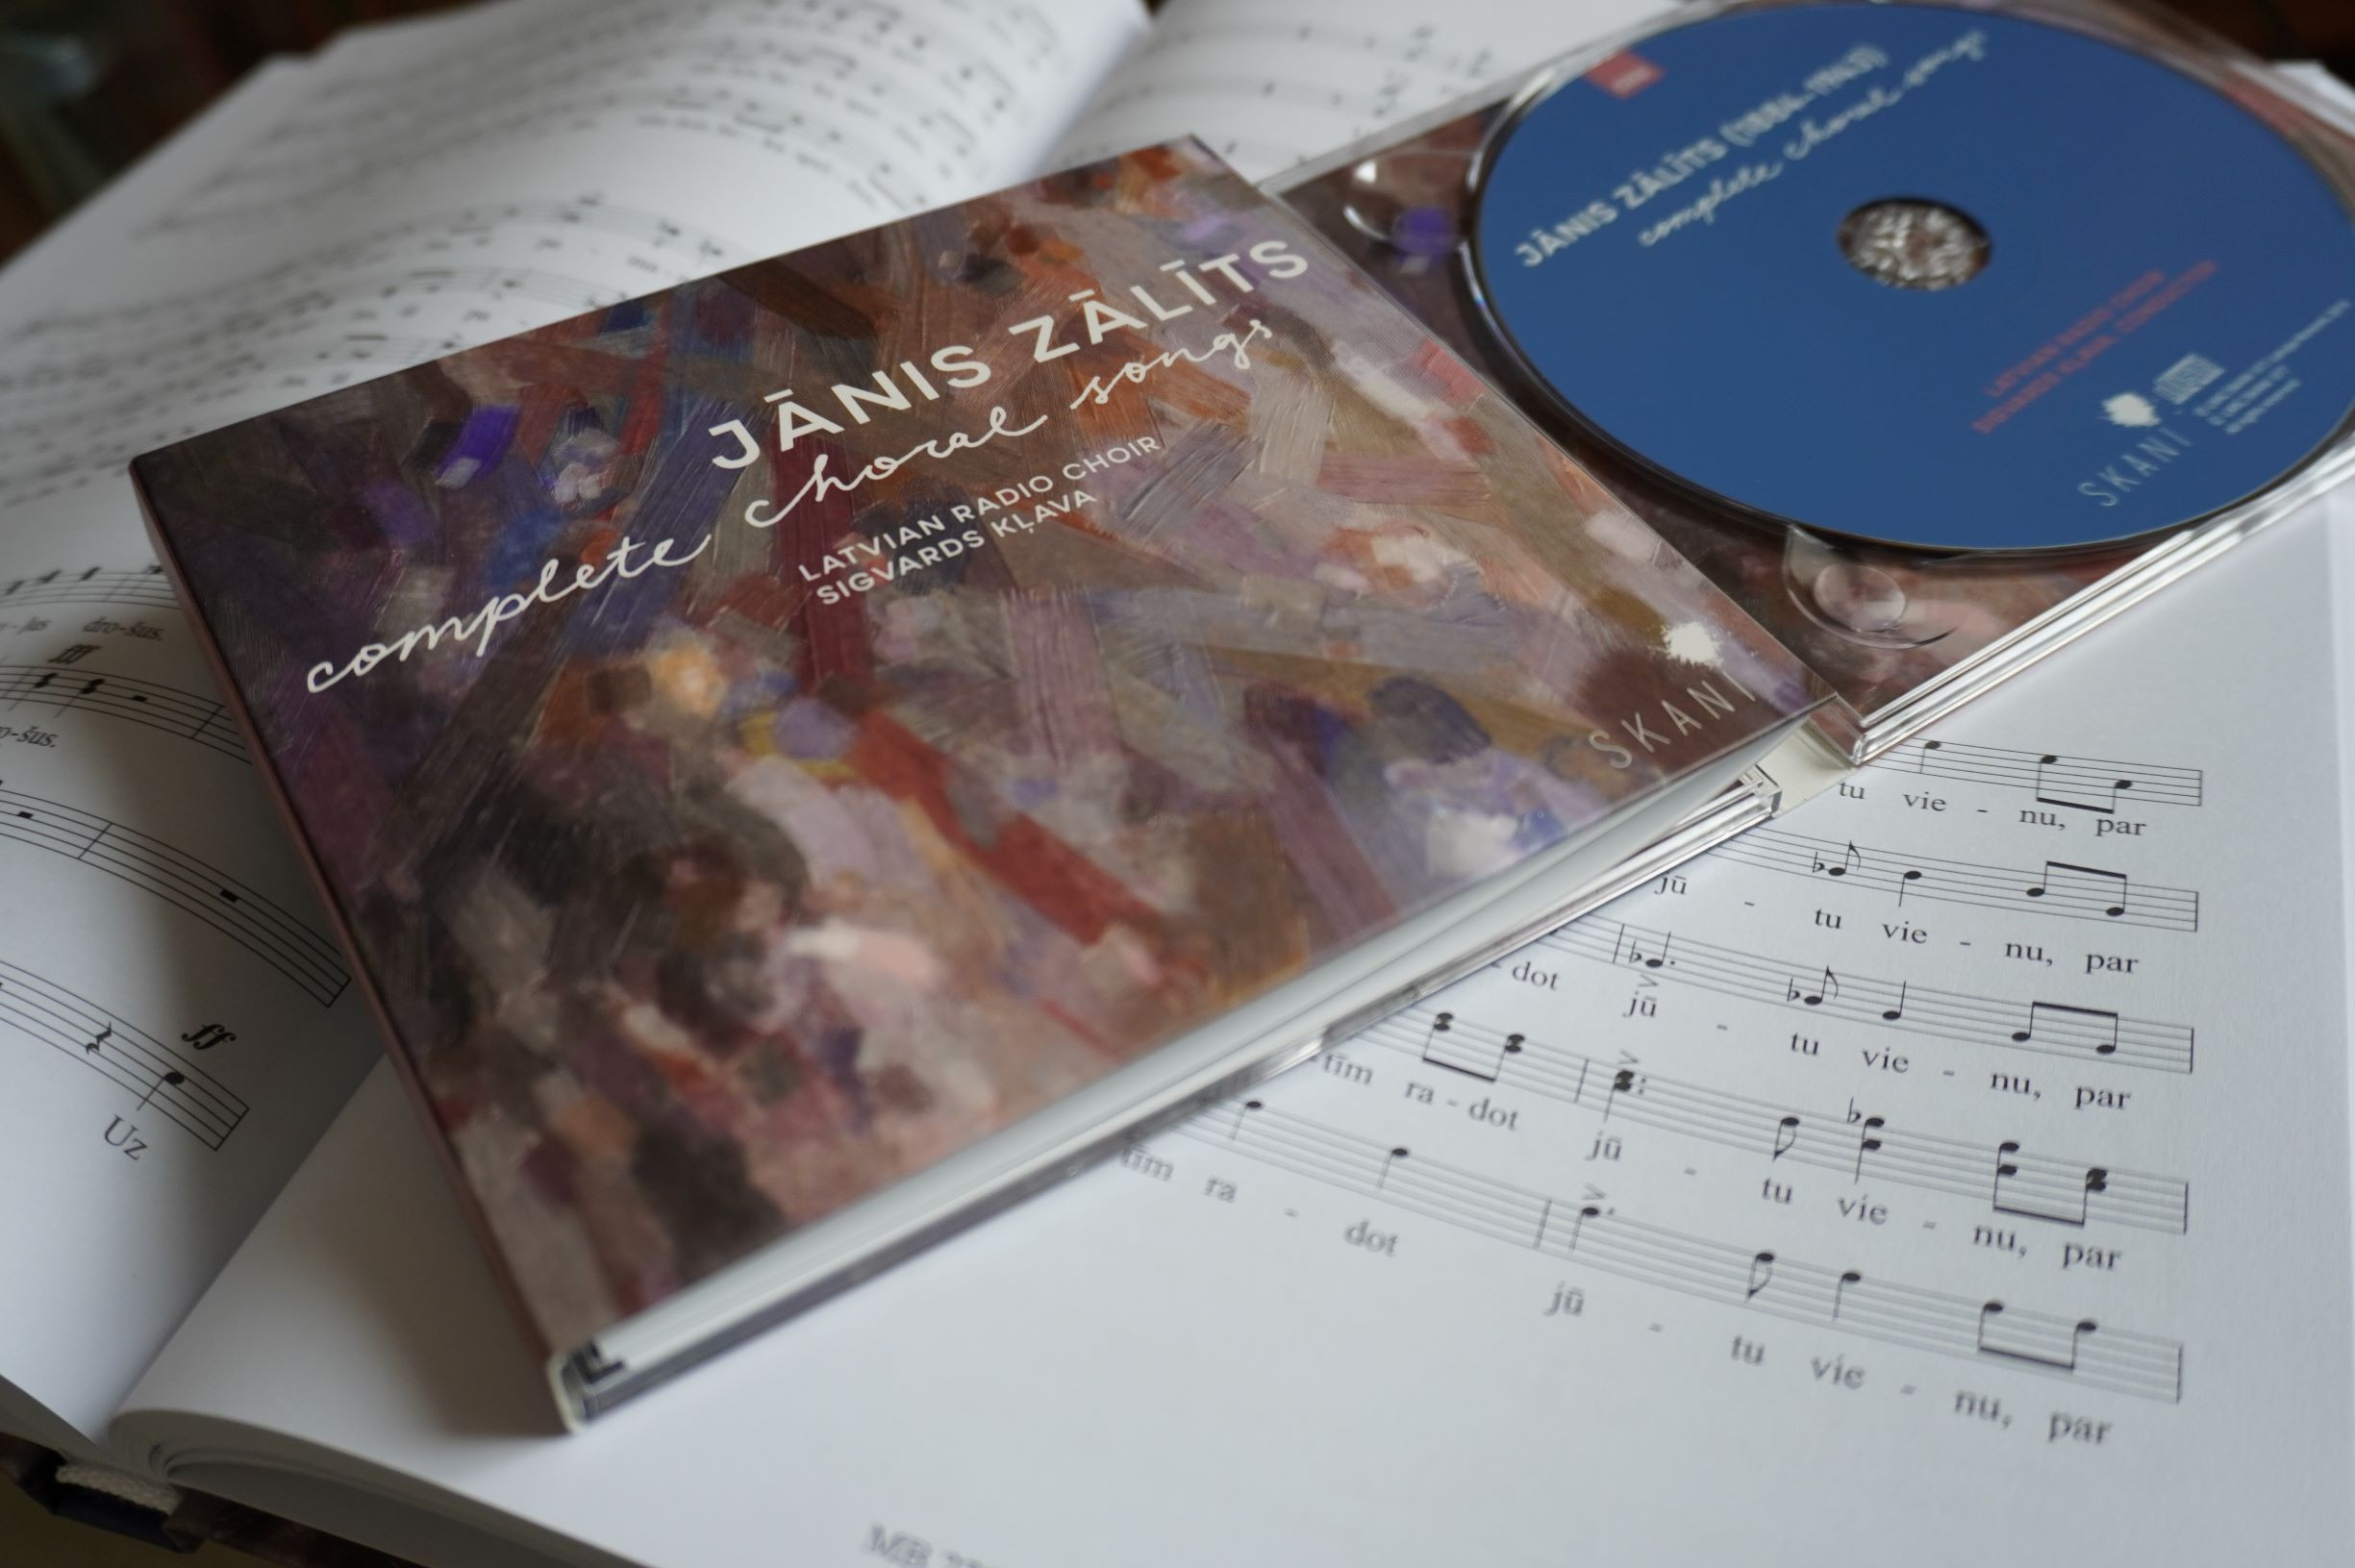 SKANI releases new album of complete choral songs of Jānis Zālīts